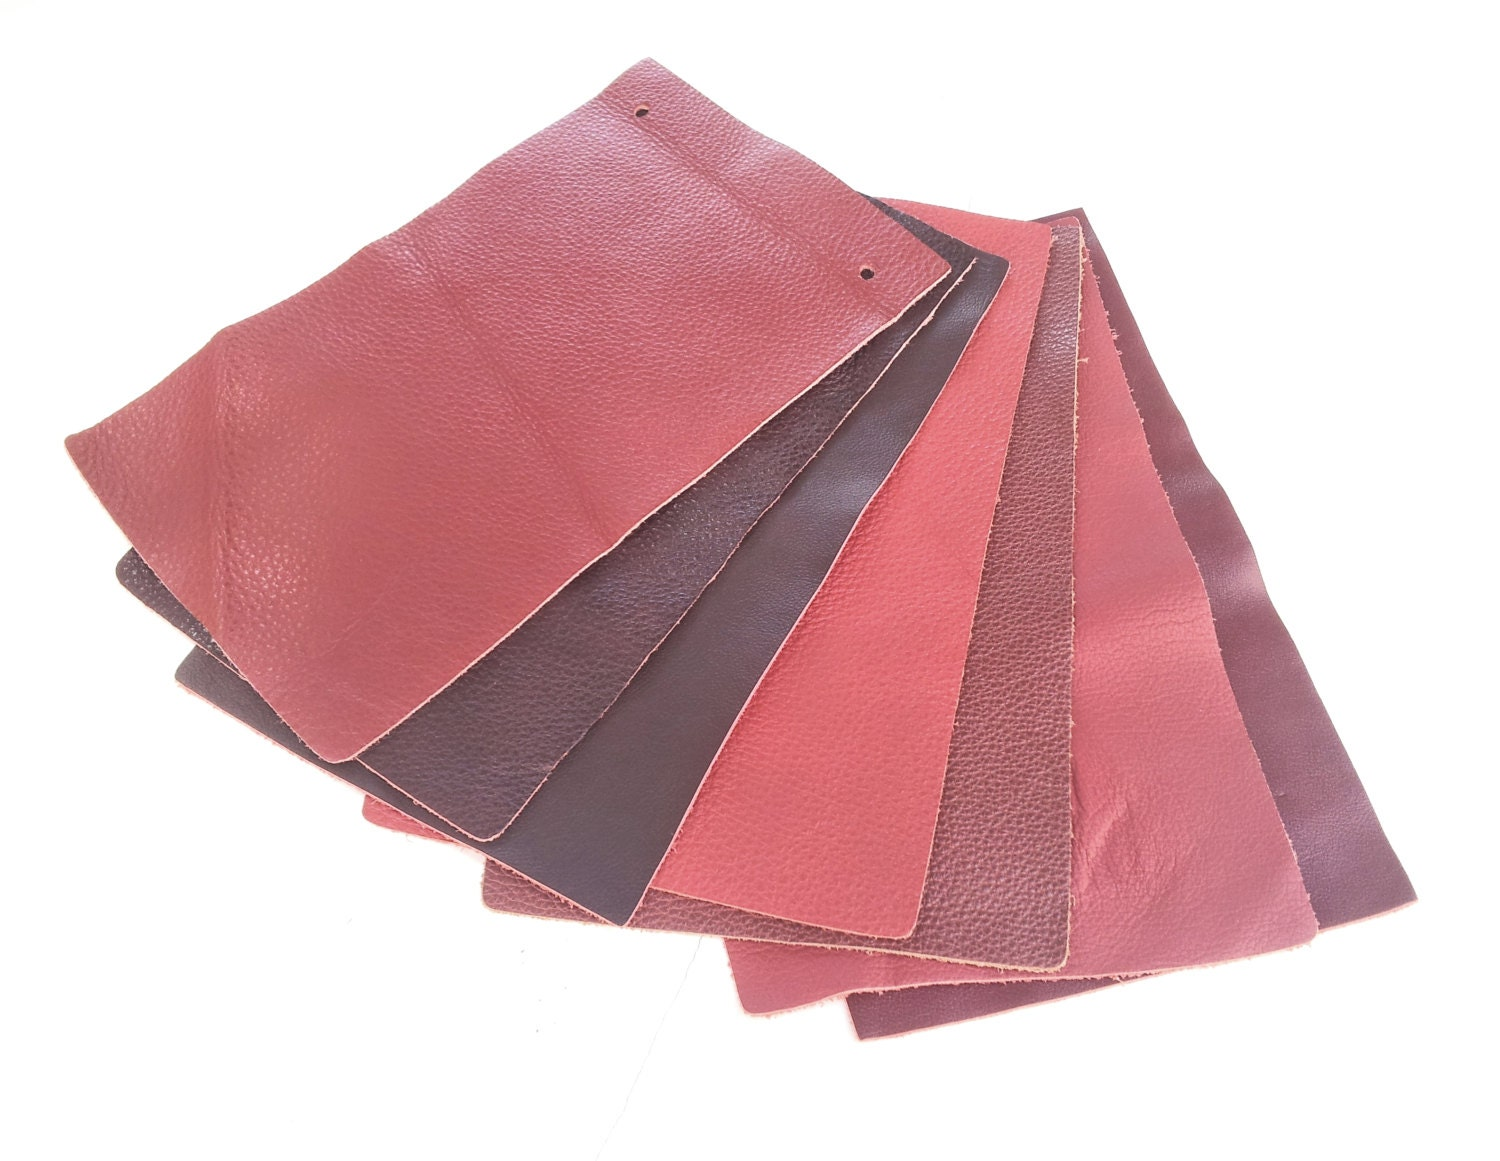 Red leather piece 9 9 x 5 9 craft supplies for for Leather sheets for crafting